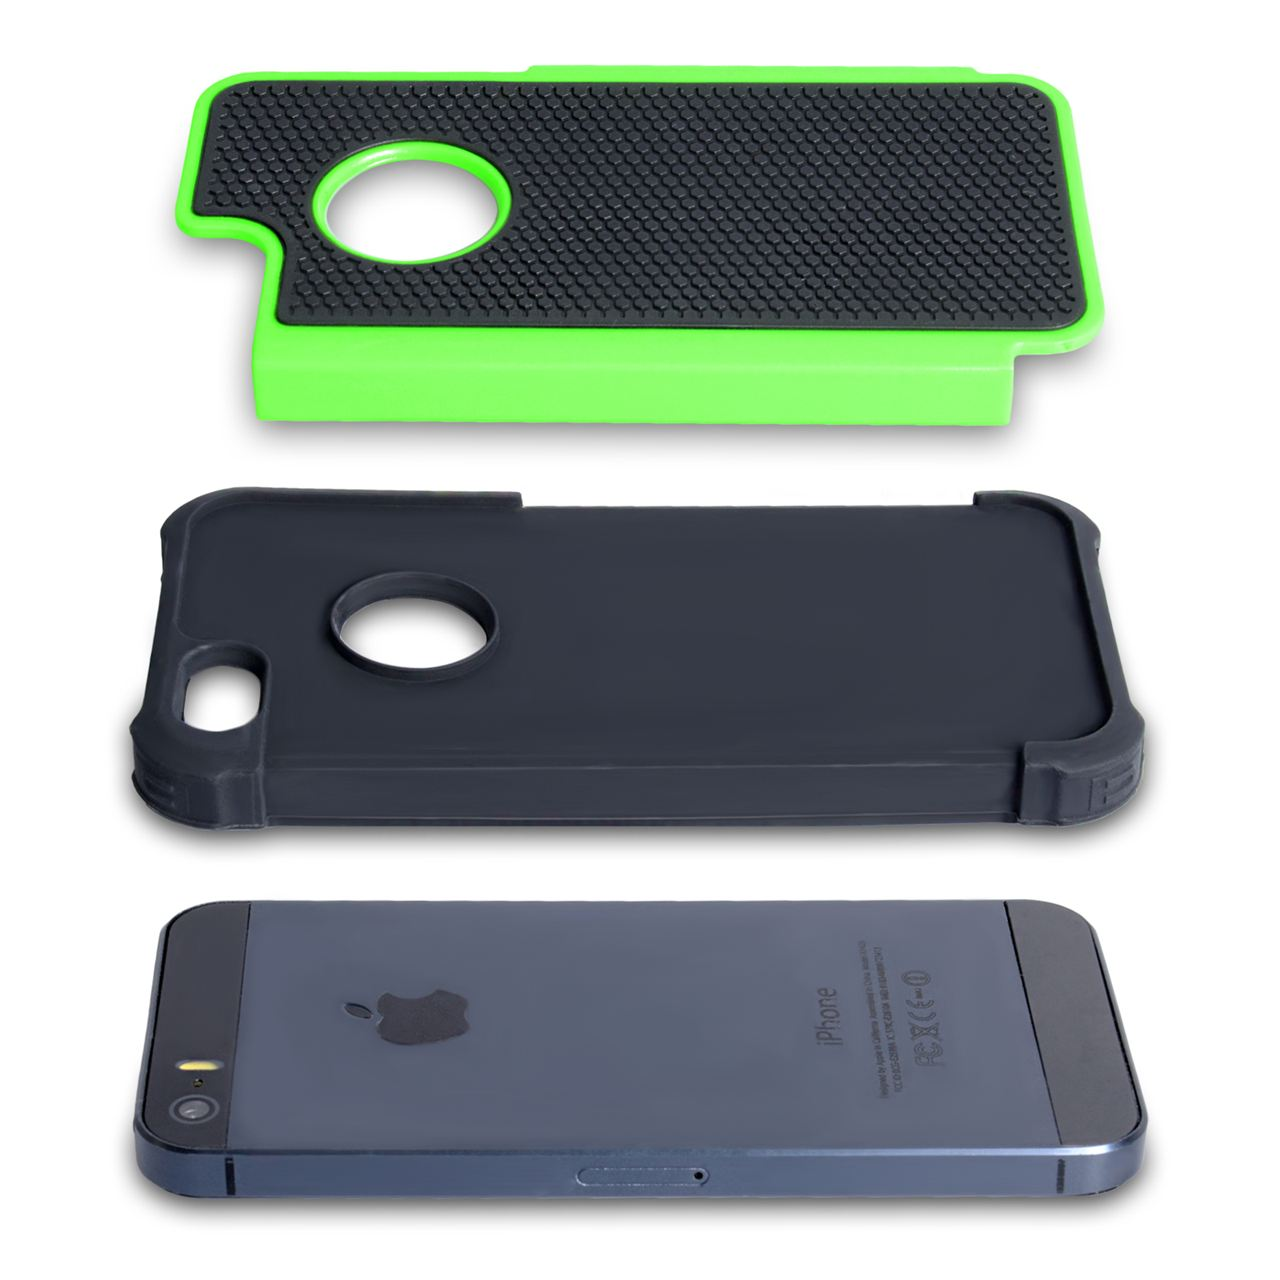 YouSave Accessories iPhone 5 / 5S Grip Combo Case - Green